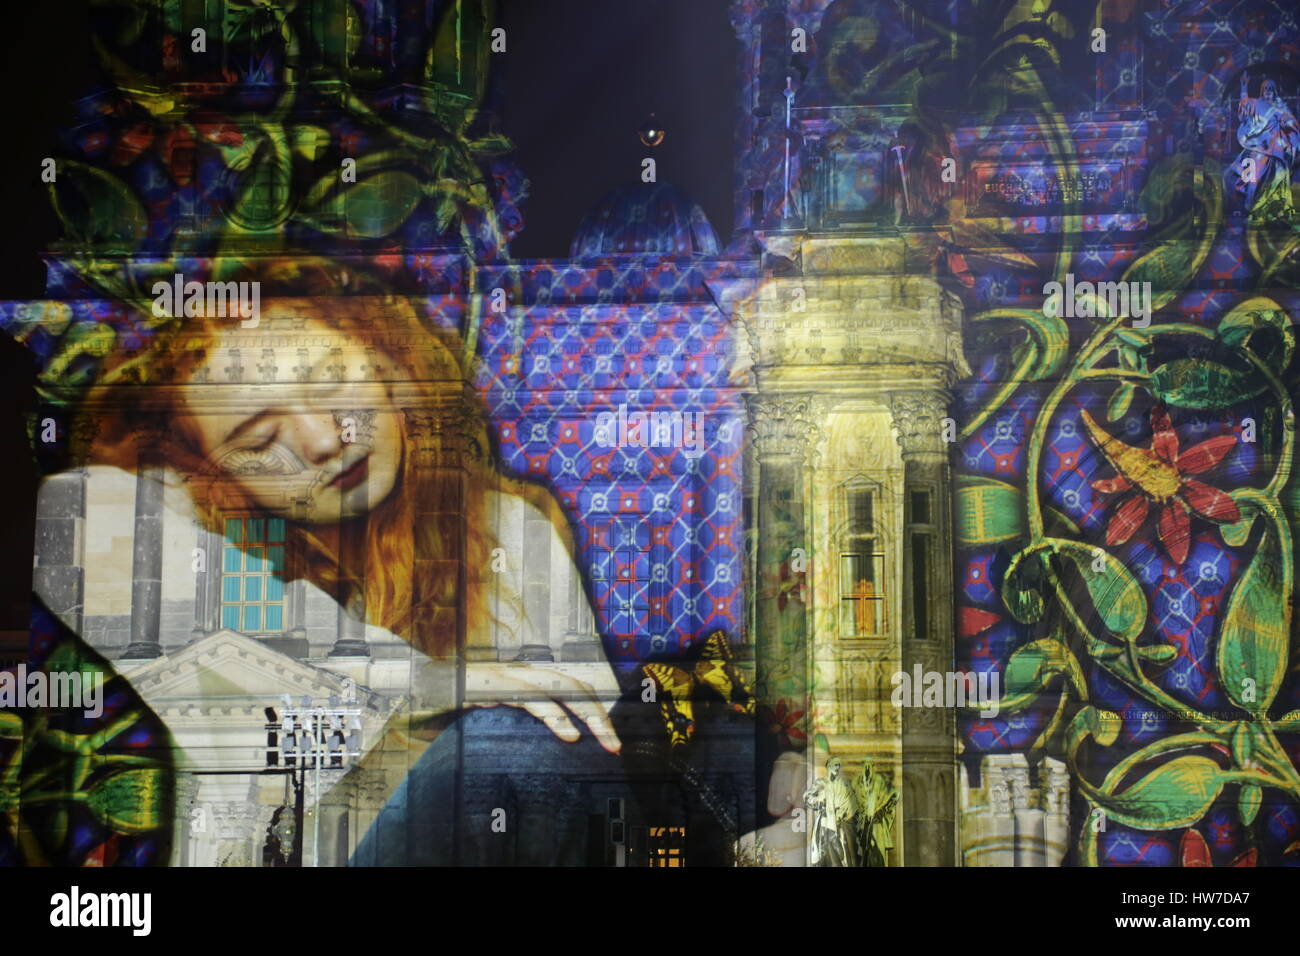 Berlin, Germany, October 12th, 2014: Festival Of Lights takes place in Berlin. - Stock Image